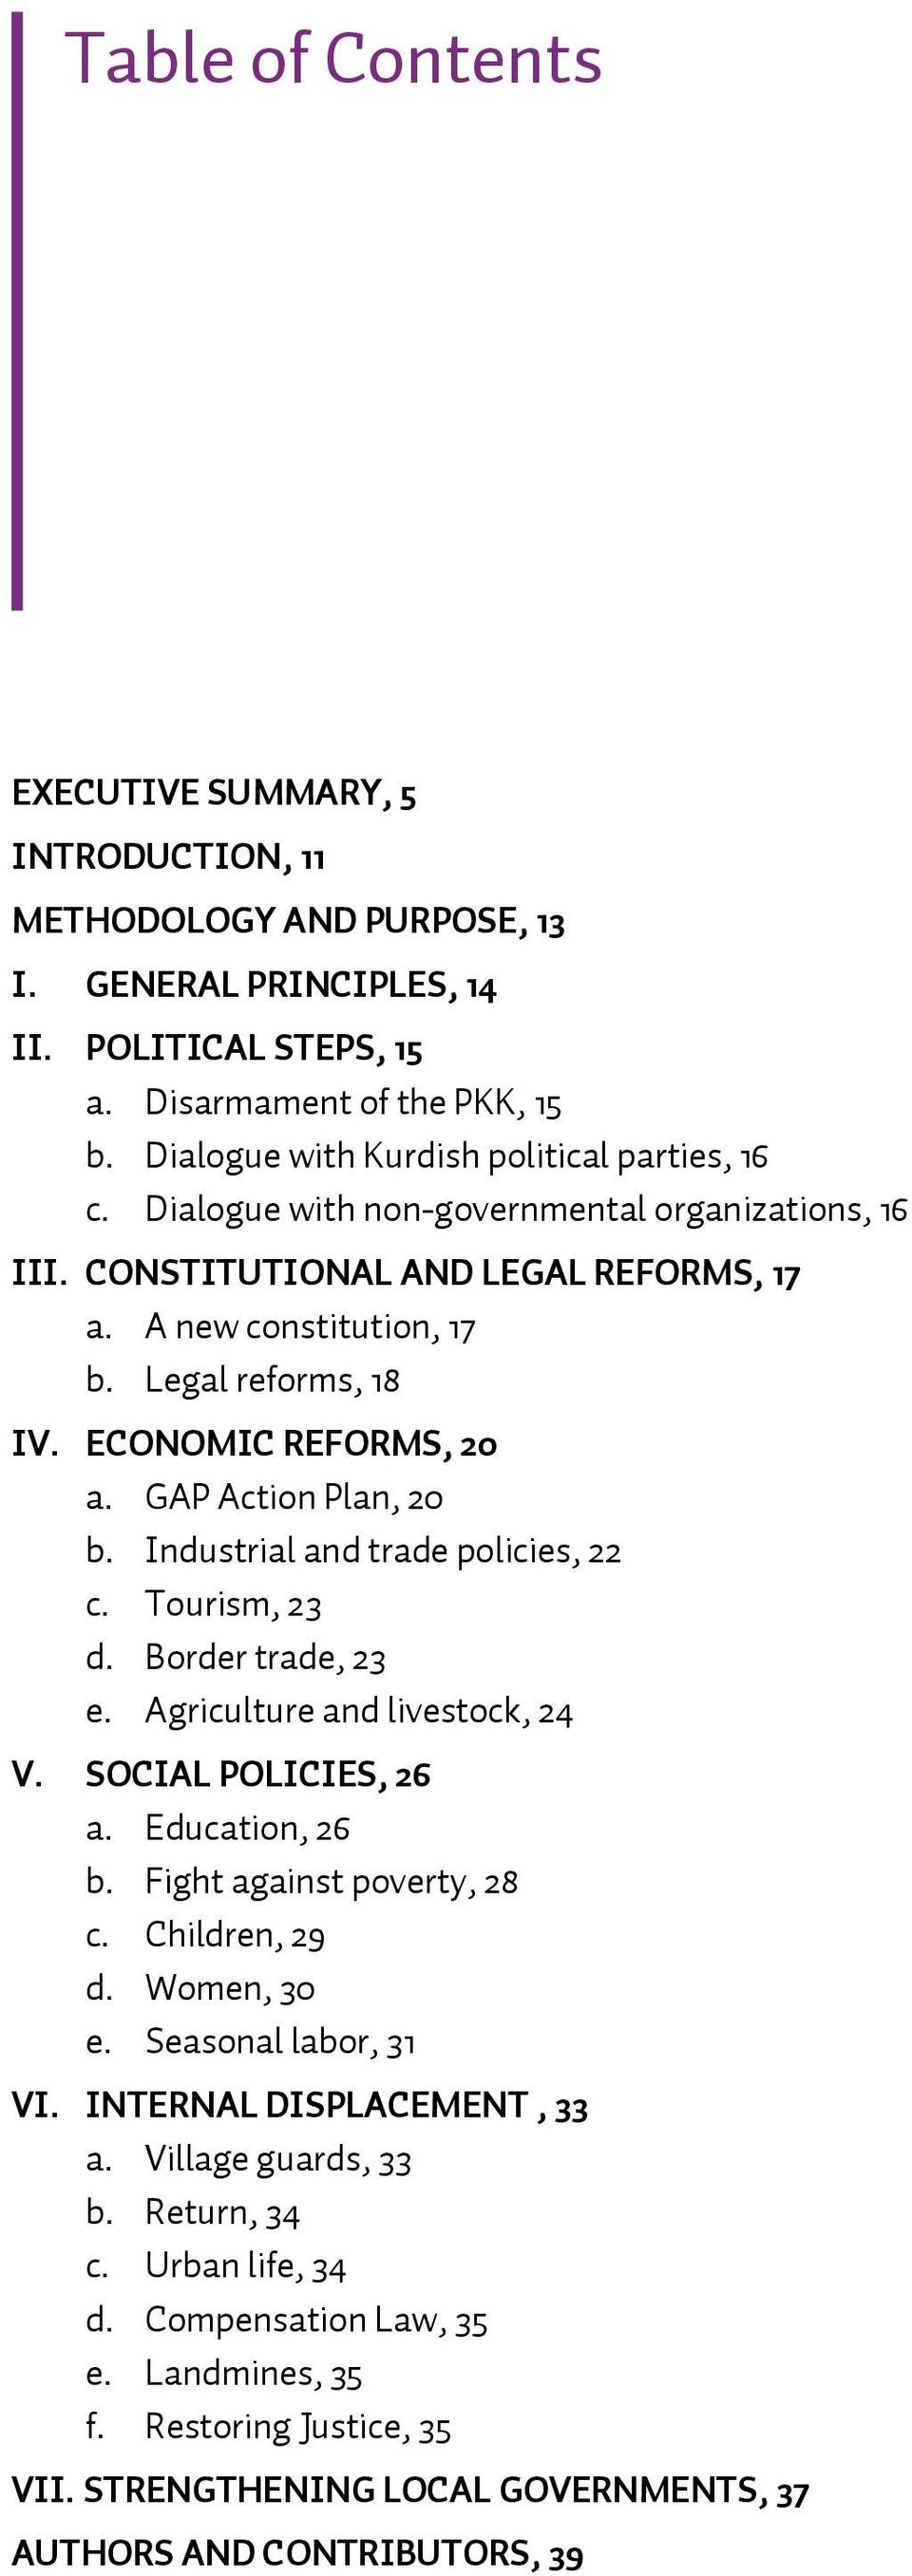 ECONOMIC REFORMS, 20 a. GAP Action Plan, 20 b. Industrial and trade policies, 22 c. Tourism, 23 d. Border trade, 23 e. Agriculture and livestock, 24 V. SOCIAL POLICIES, 26 a. Education, 26 b.